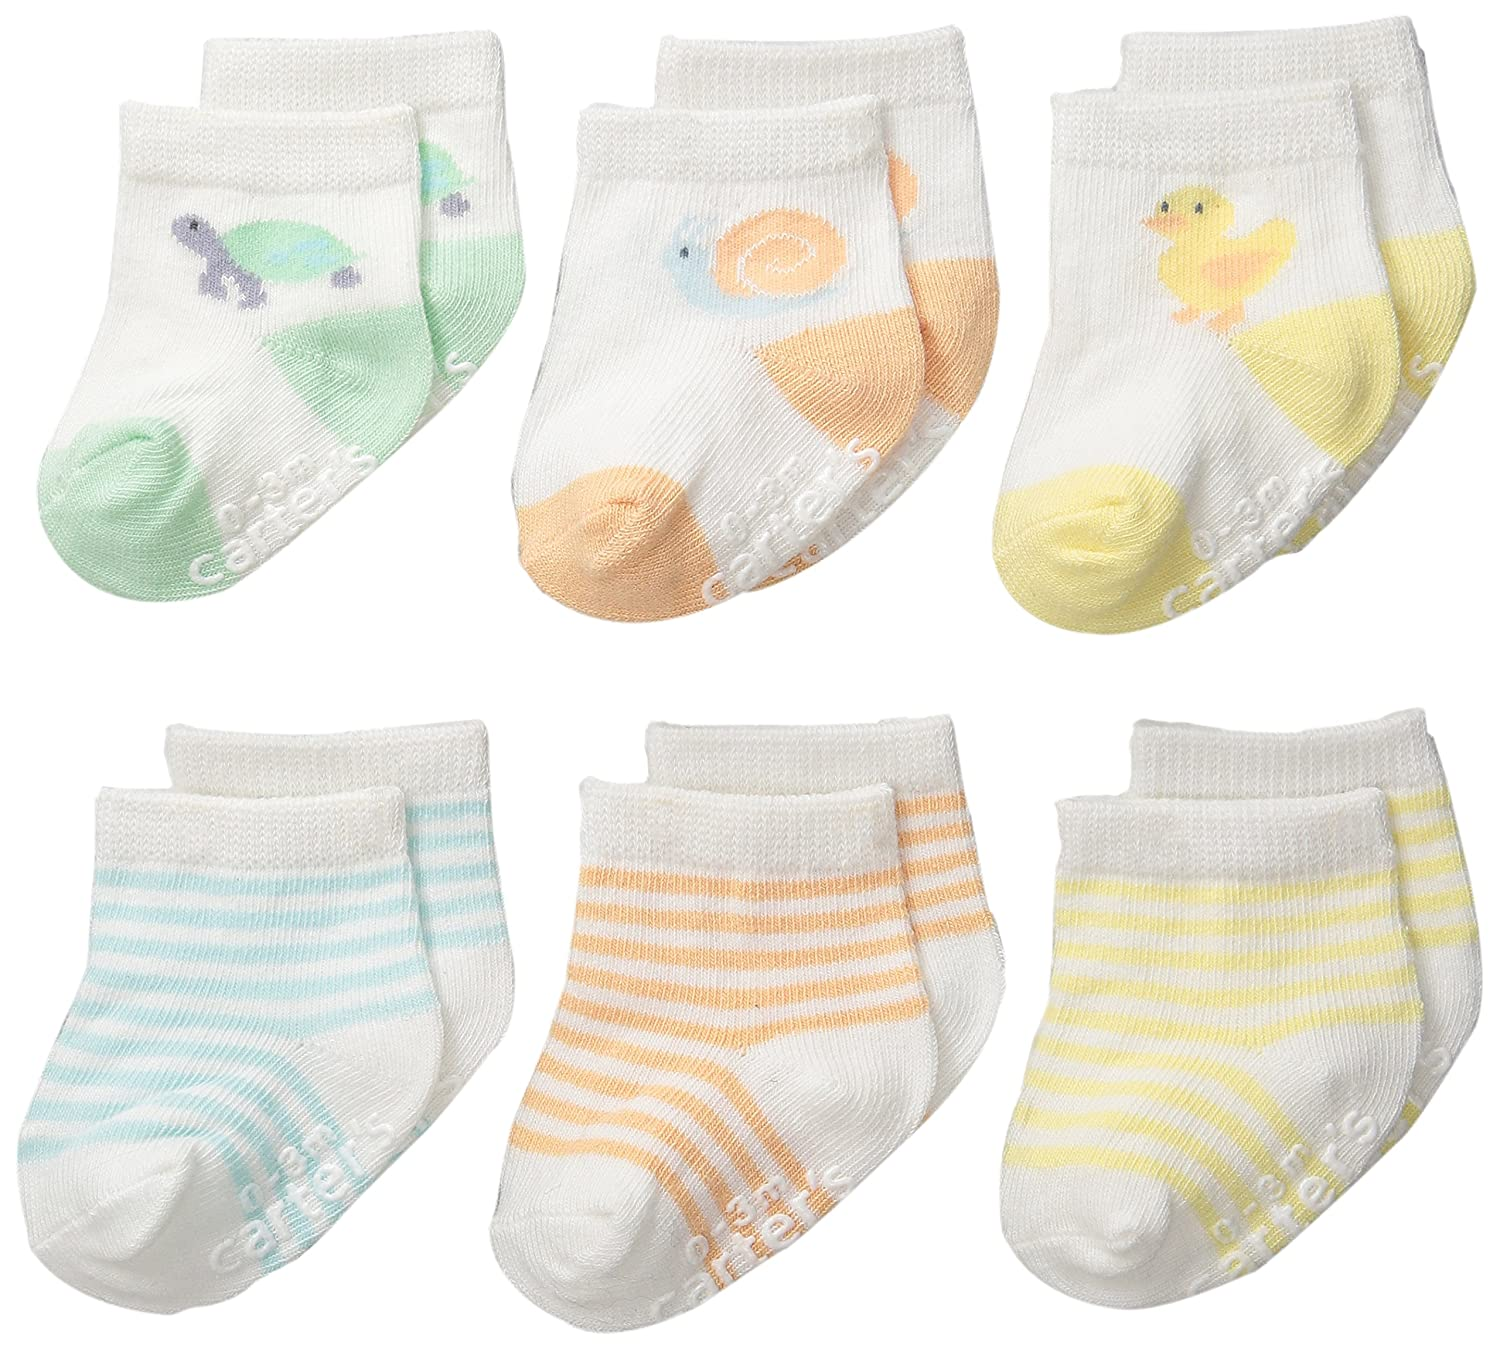 Carter's Unisex-Baby Newborn Color Animal Socks (Pack of 6)